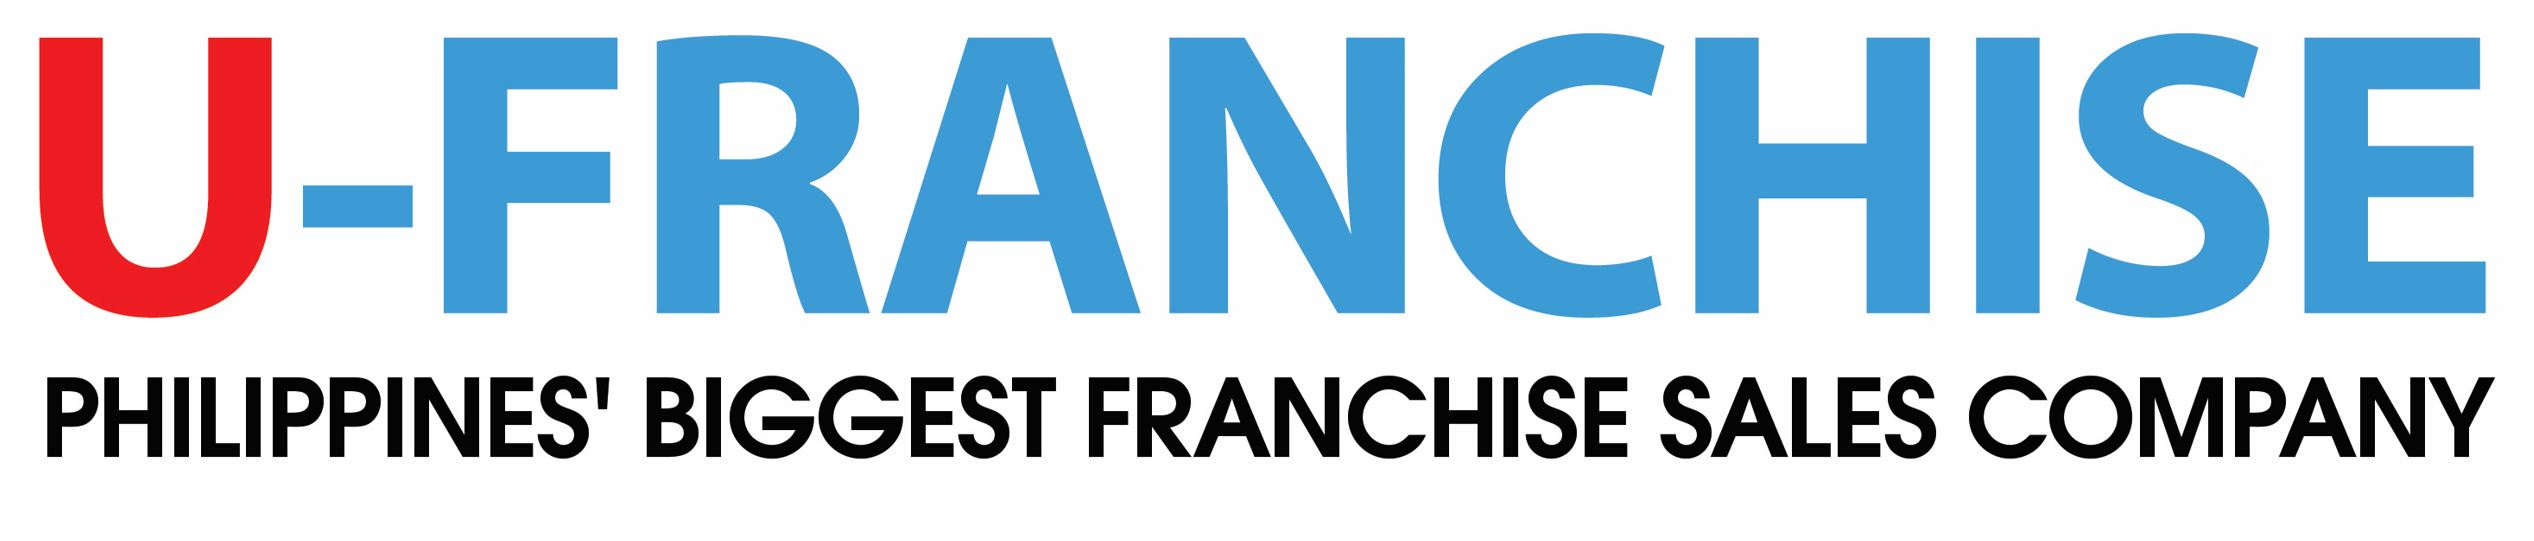 U-Franchise Sales & Management